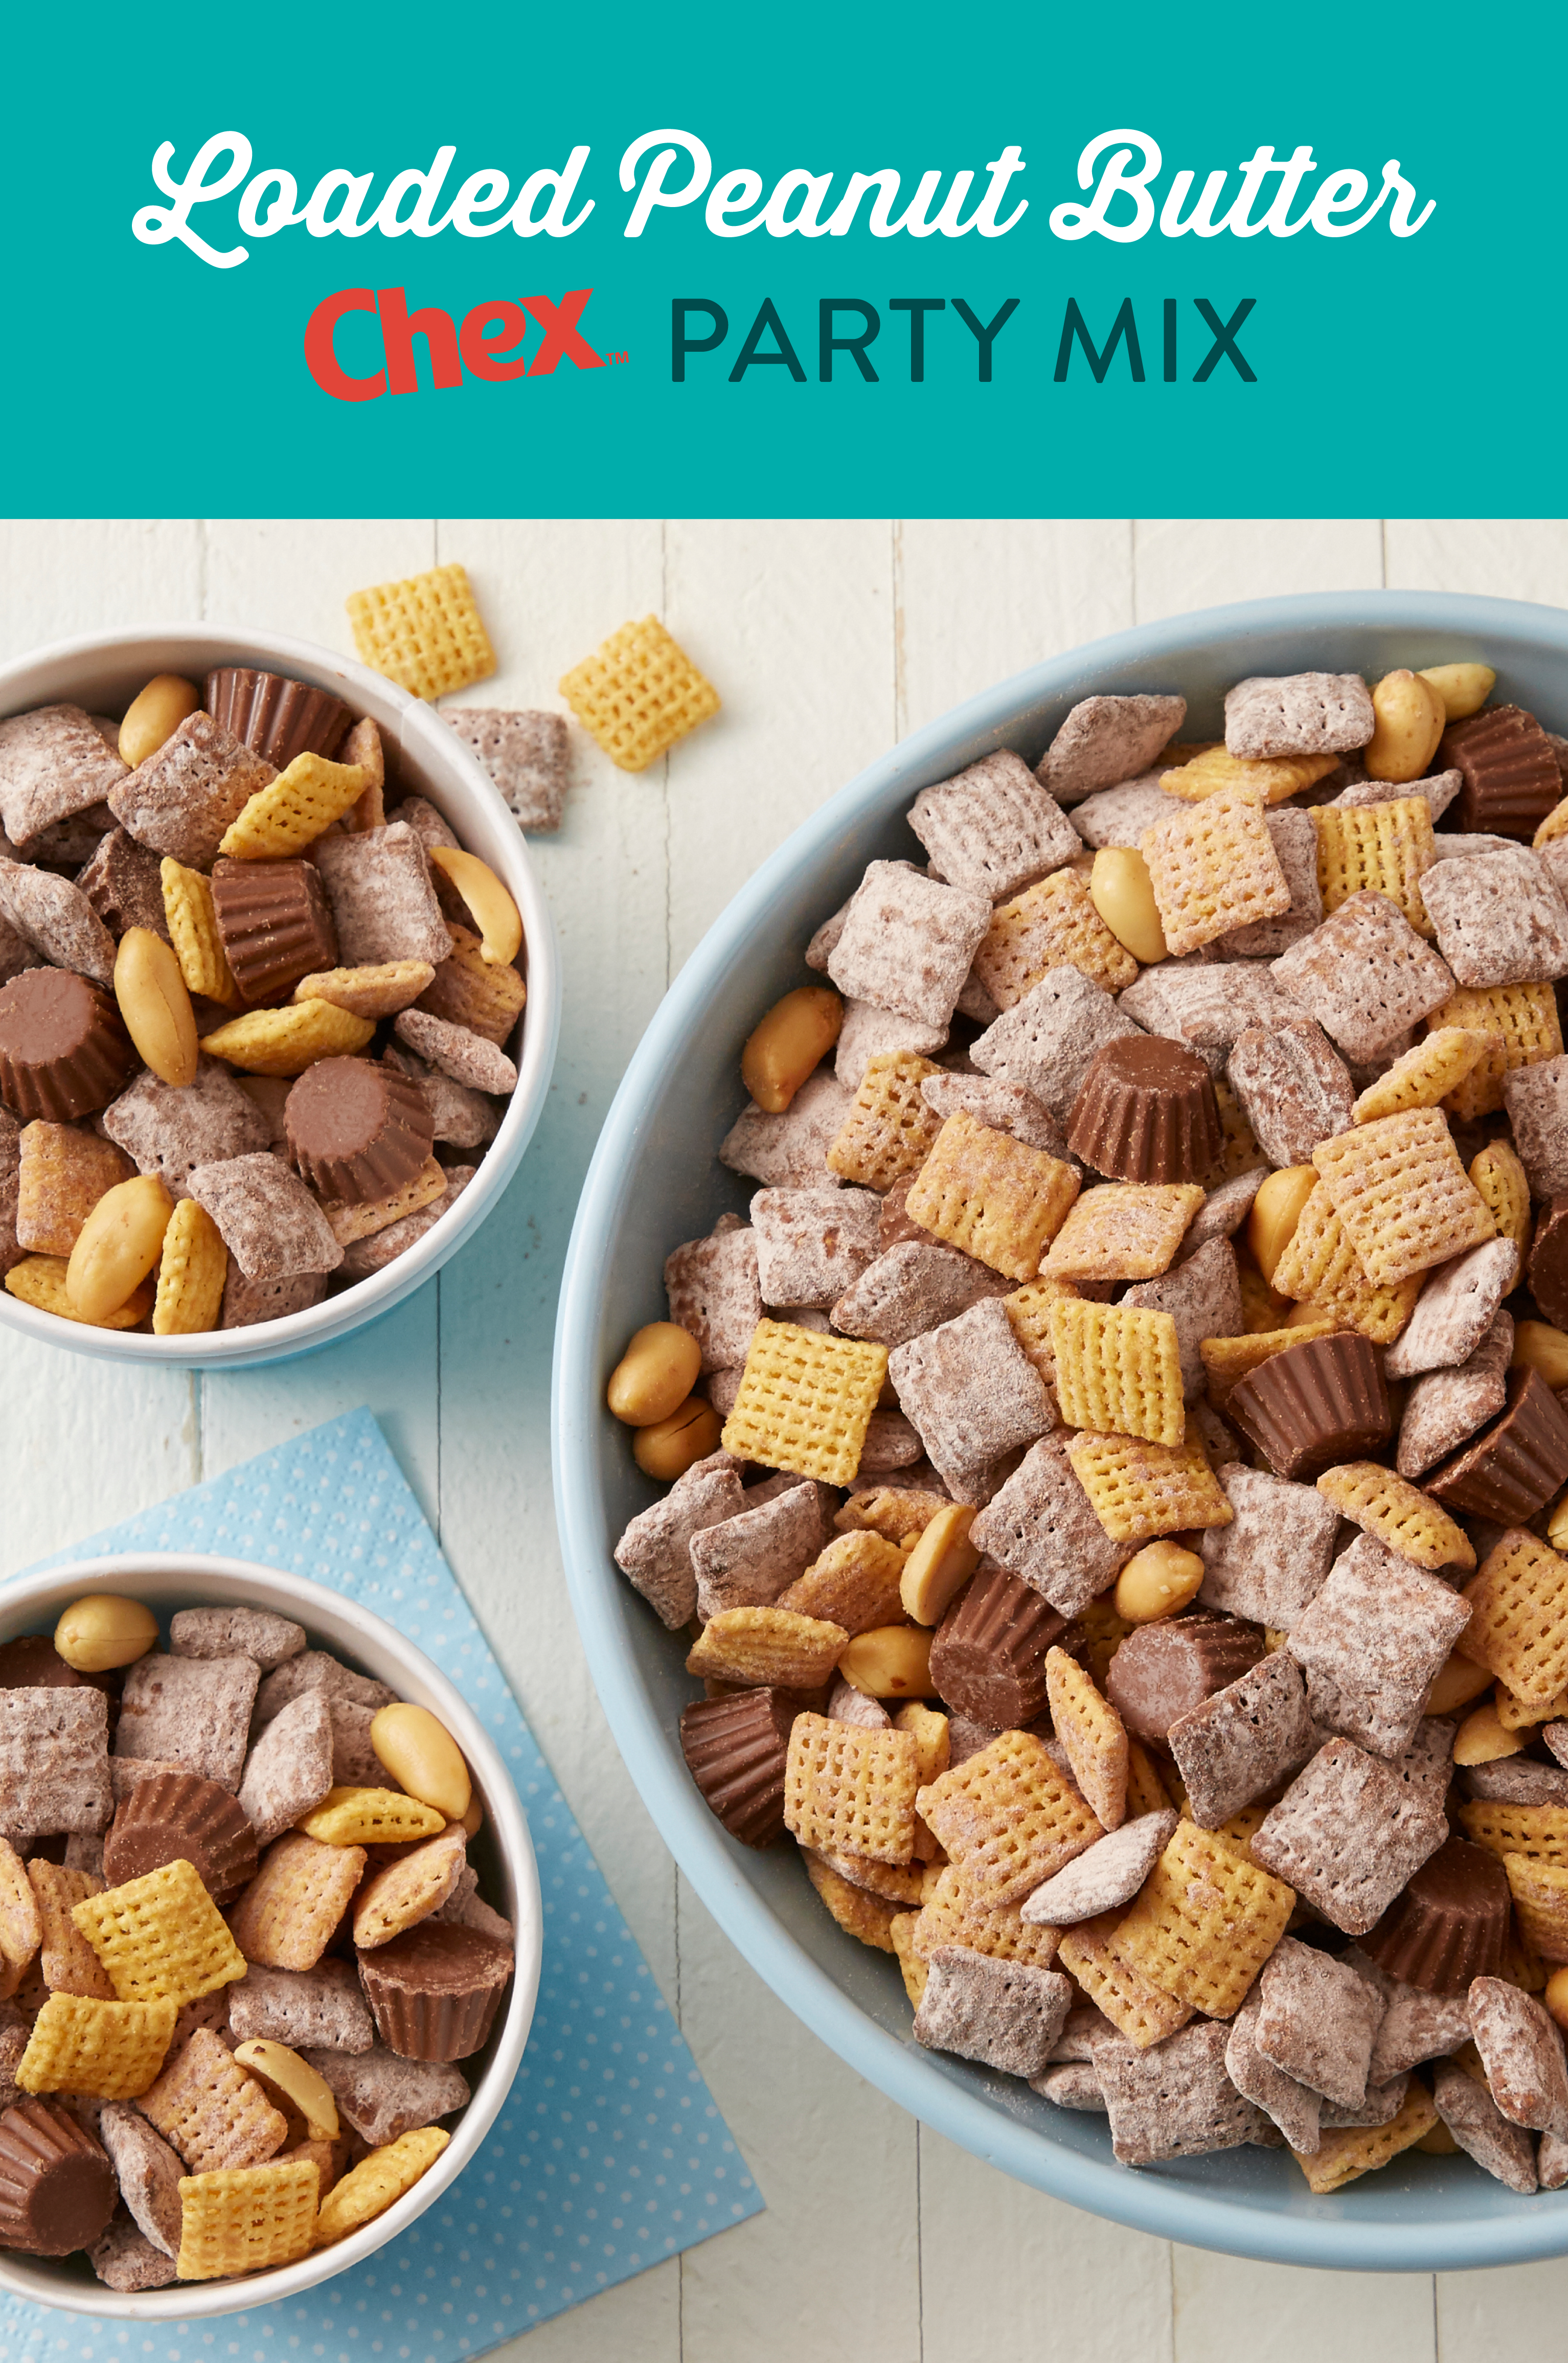 Loaded Peanut Butter Chex Party Mix Recipe Snacks Food Snack Mix